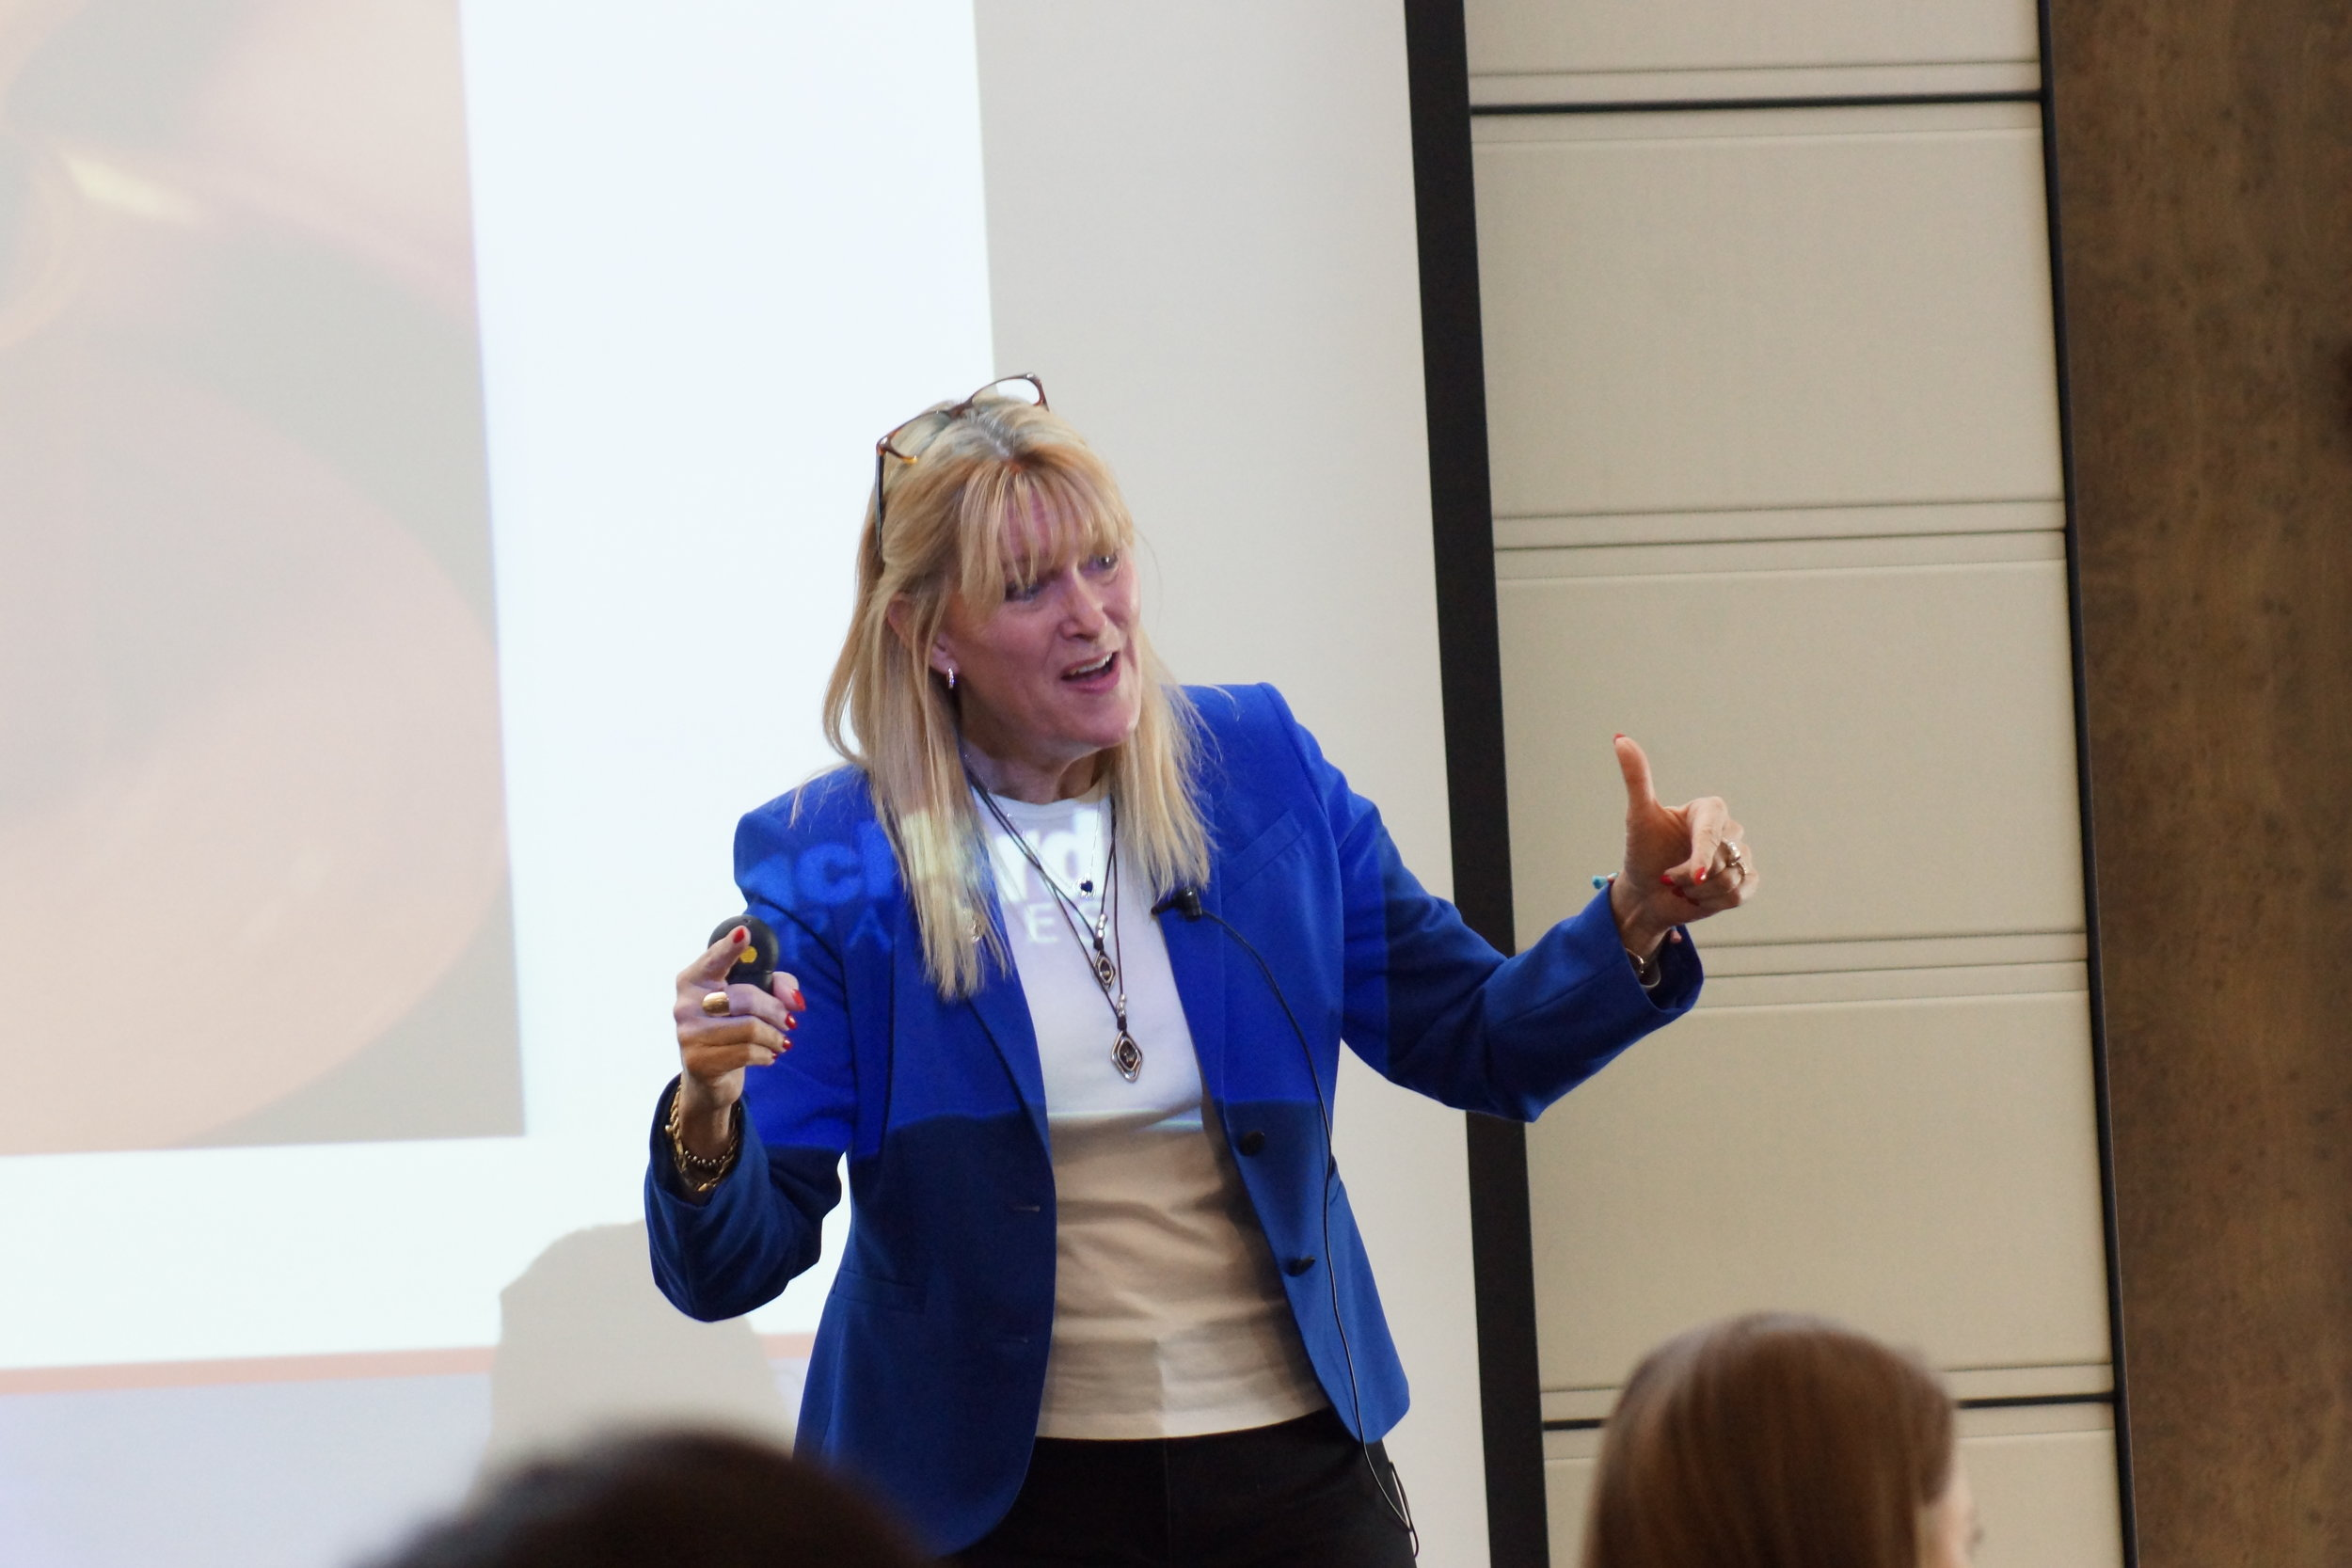 KEYNOTE ADDRESS:  Dr. Halsey pictured here presents her steps to self empowerment as a female.